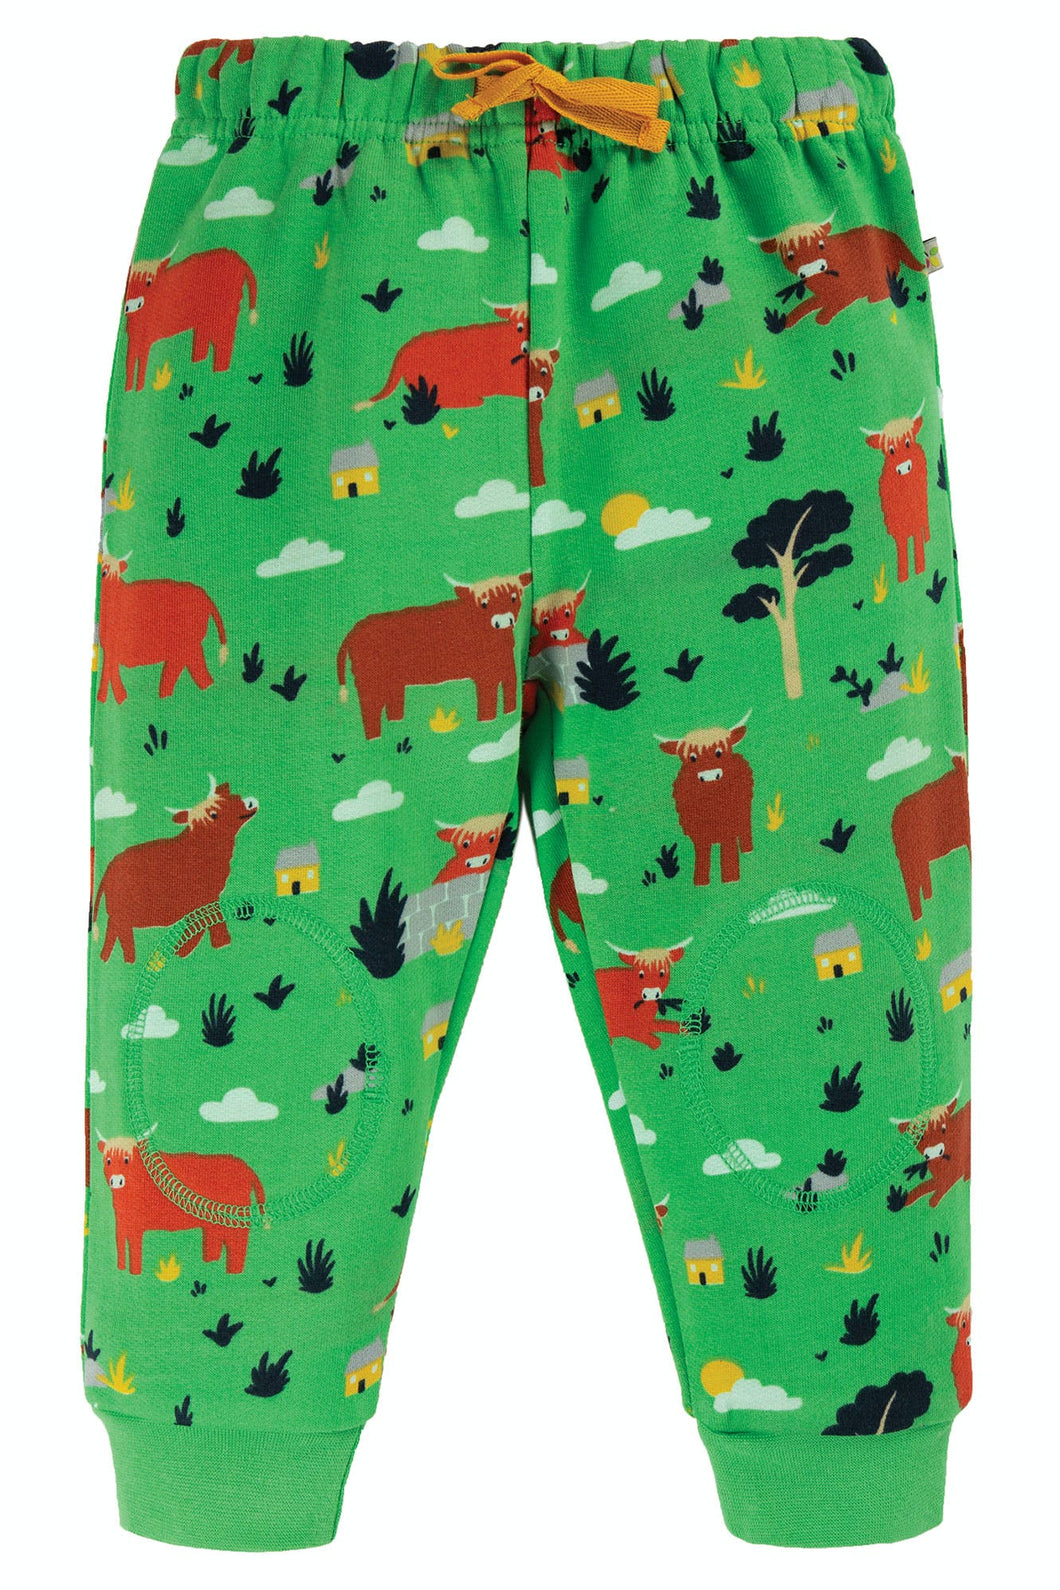 Frugi Snuggle Crawlers - Highland Cow, Front